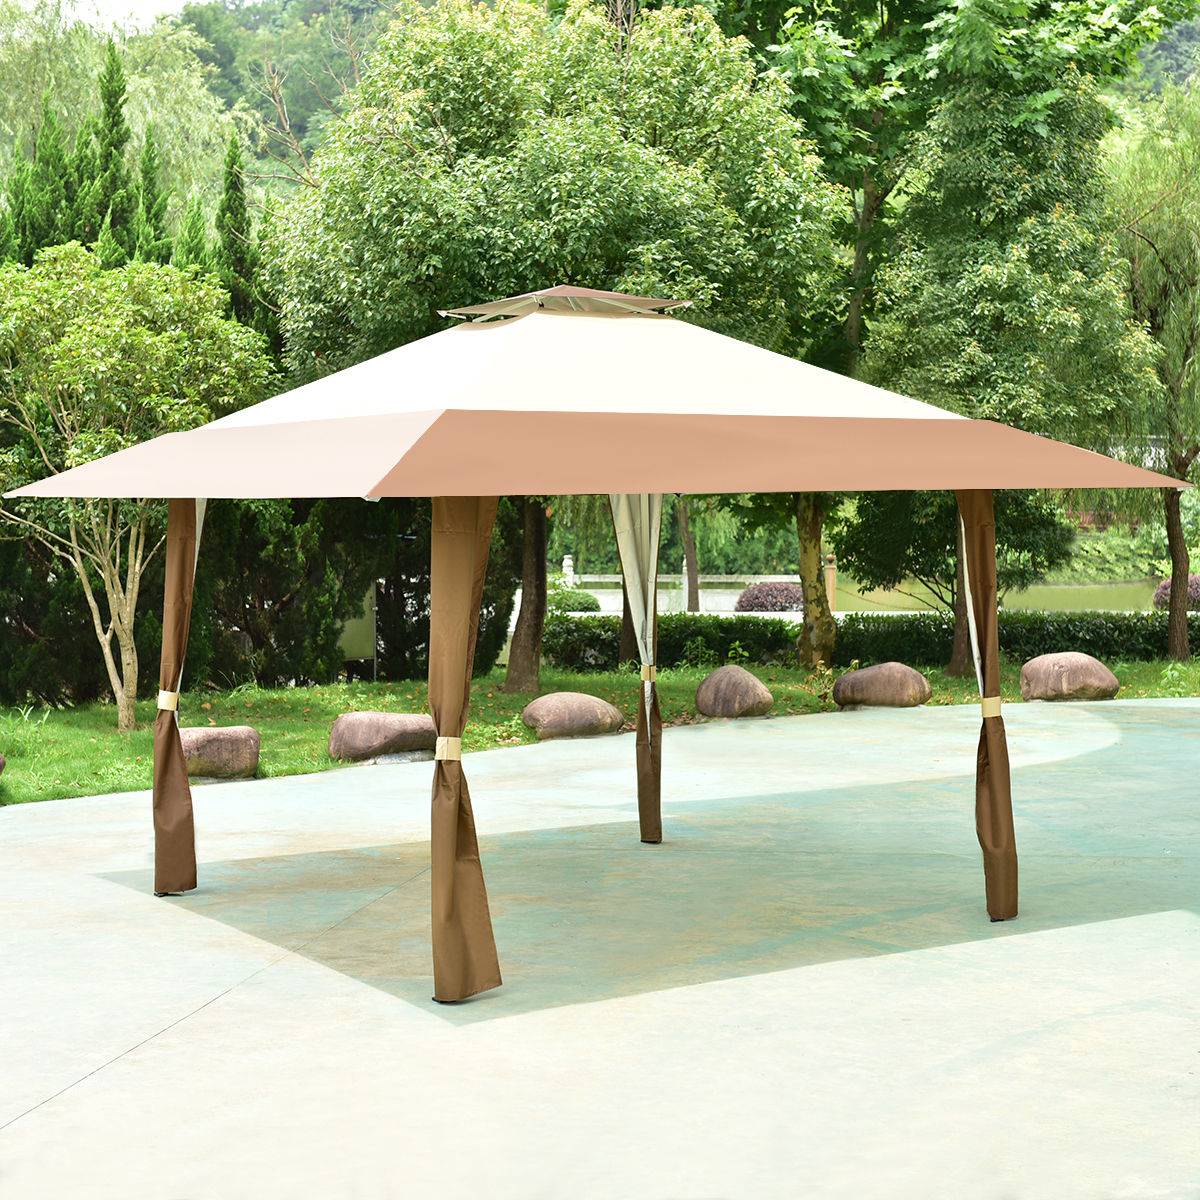 Costway 13'x13' Folding Gazebo Canopy Shelter Awning Tent Patio Garden Outdoor Companion by Costway